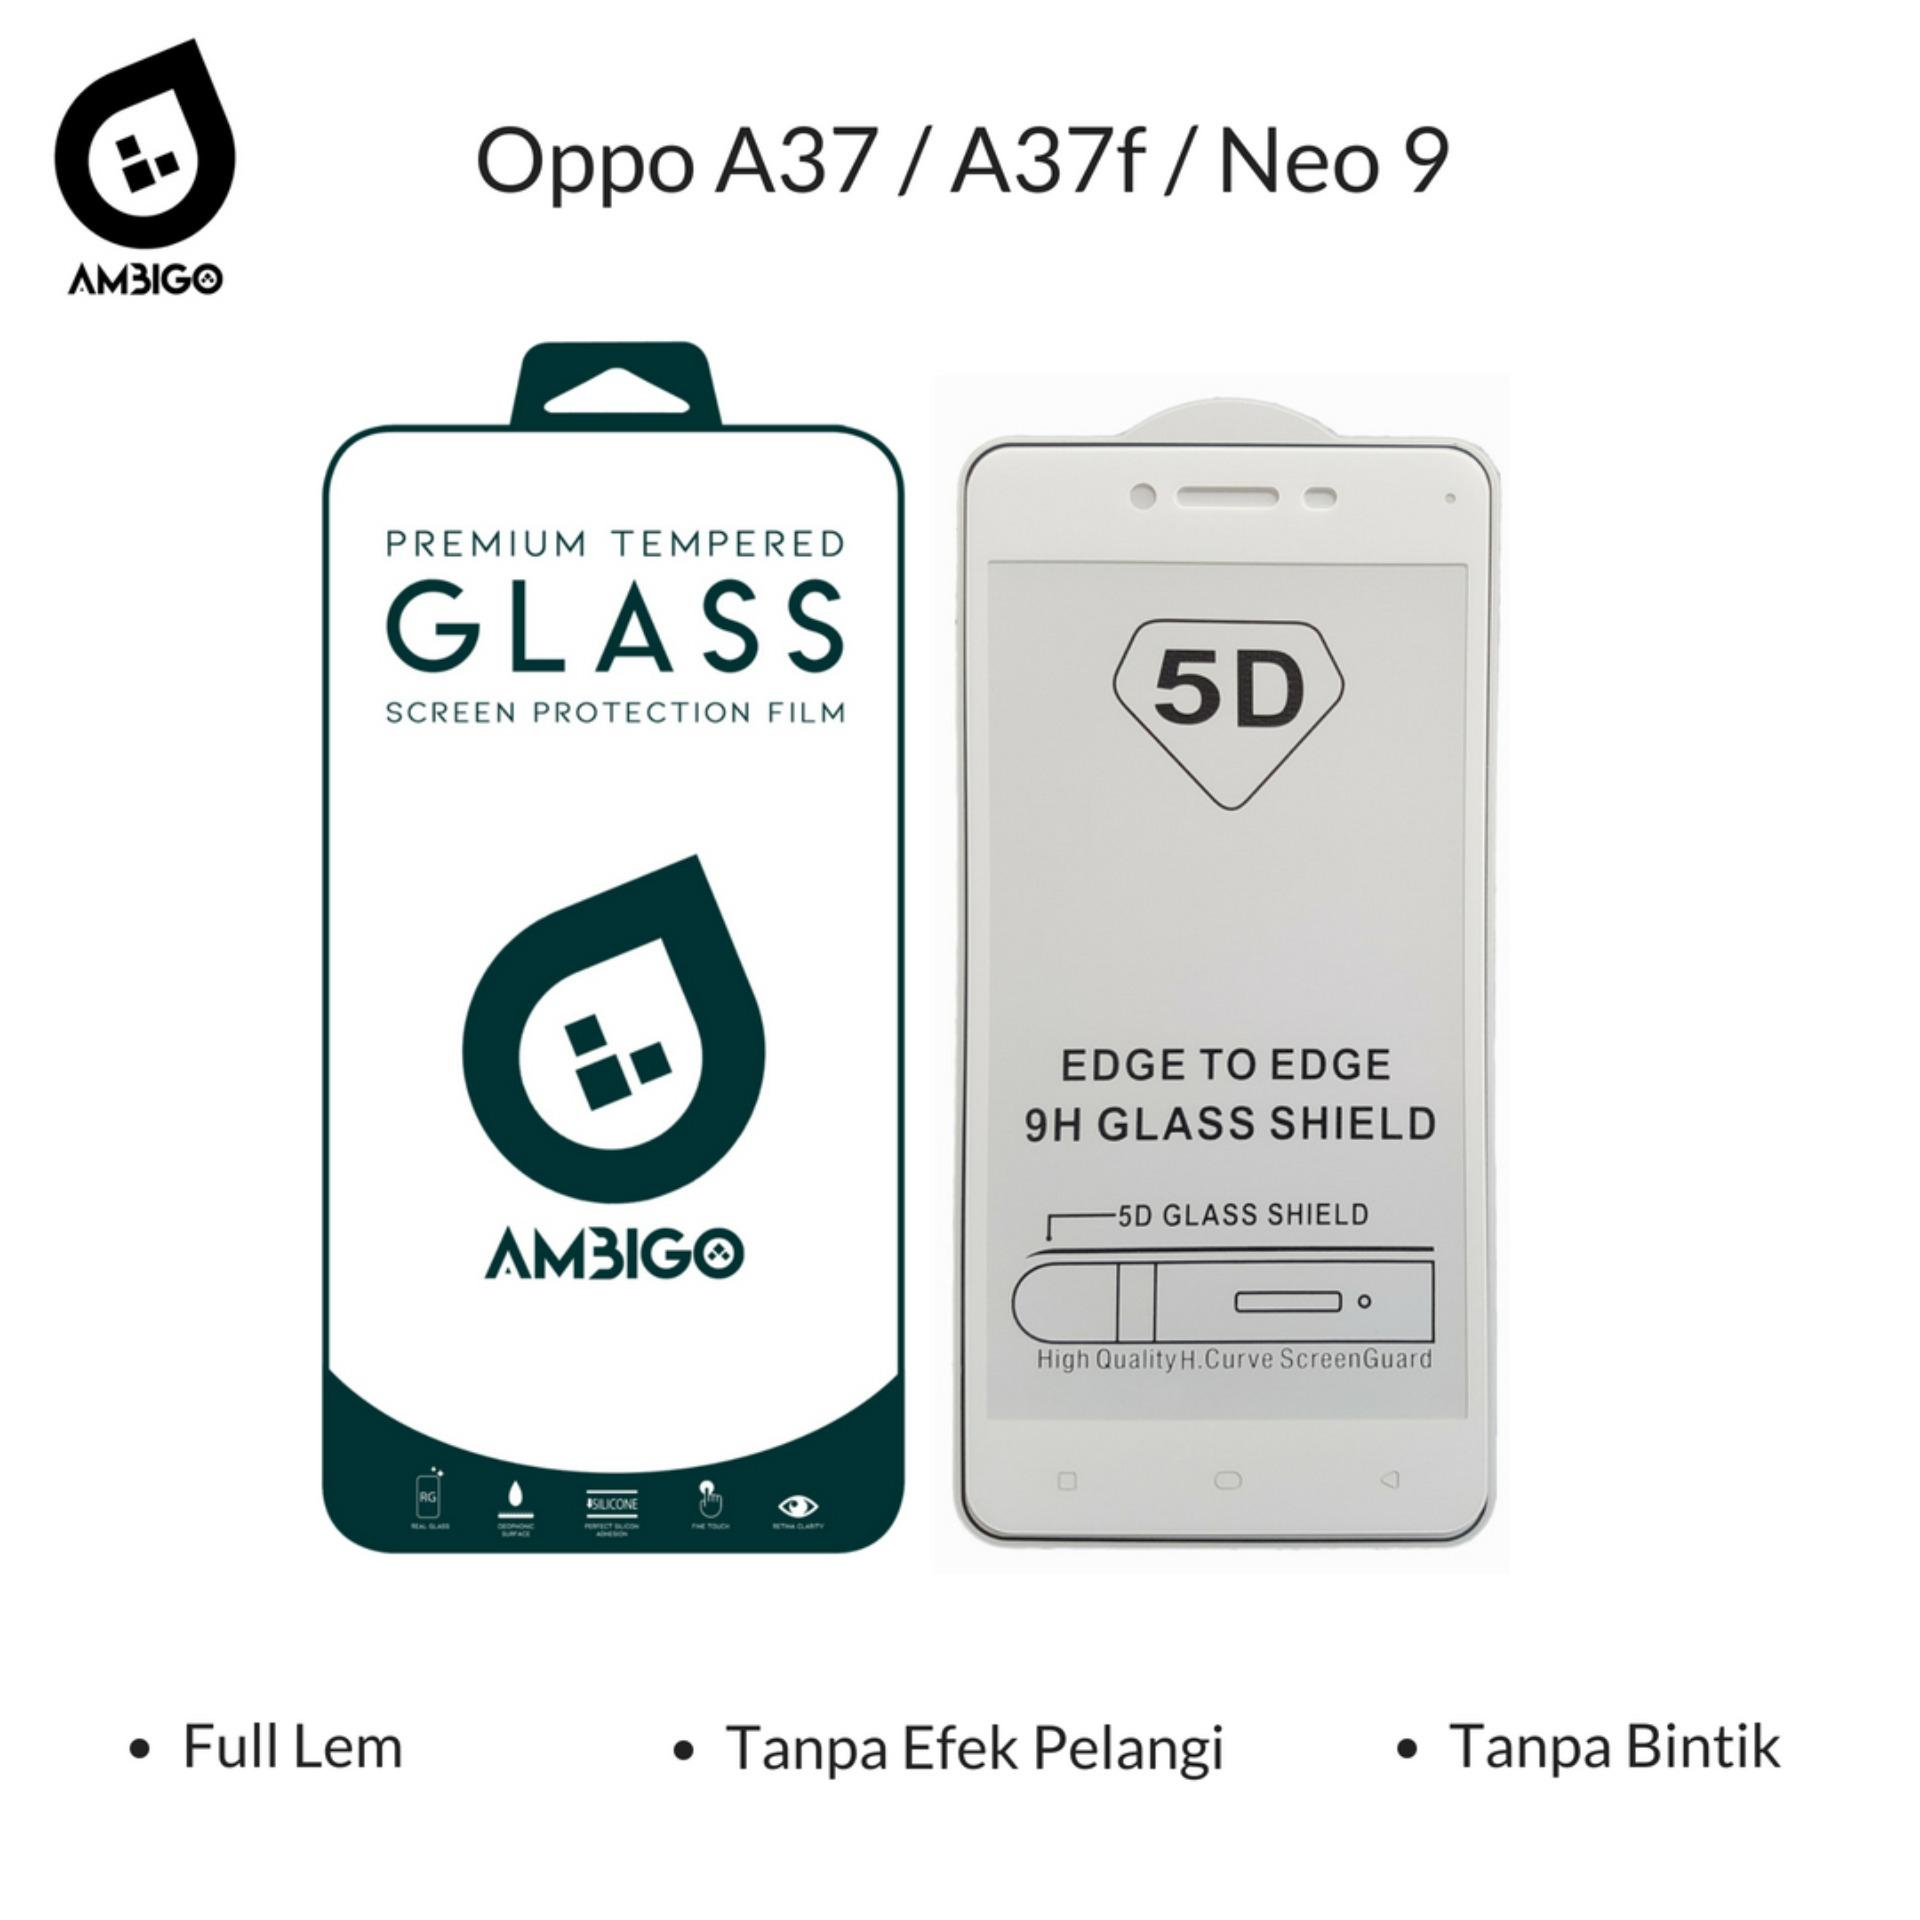 Gerai Acc Ambigo Tempered Glass 5D Full Cover Warna / Anti Gores Kaca Full Lem Untuk Oppo A37 / A37f / Neo 9 - White